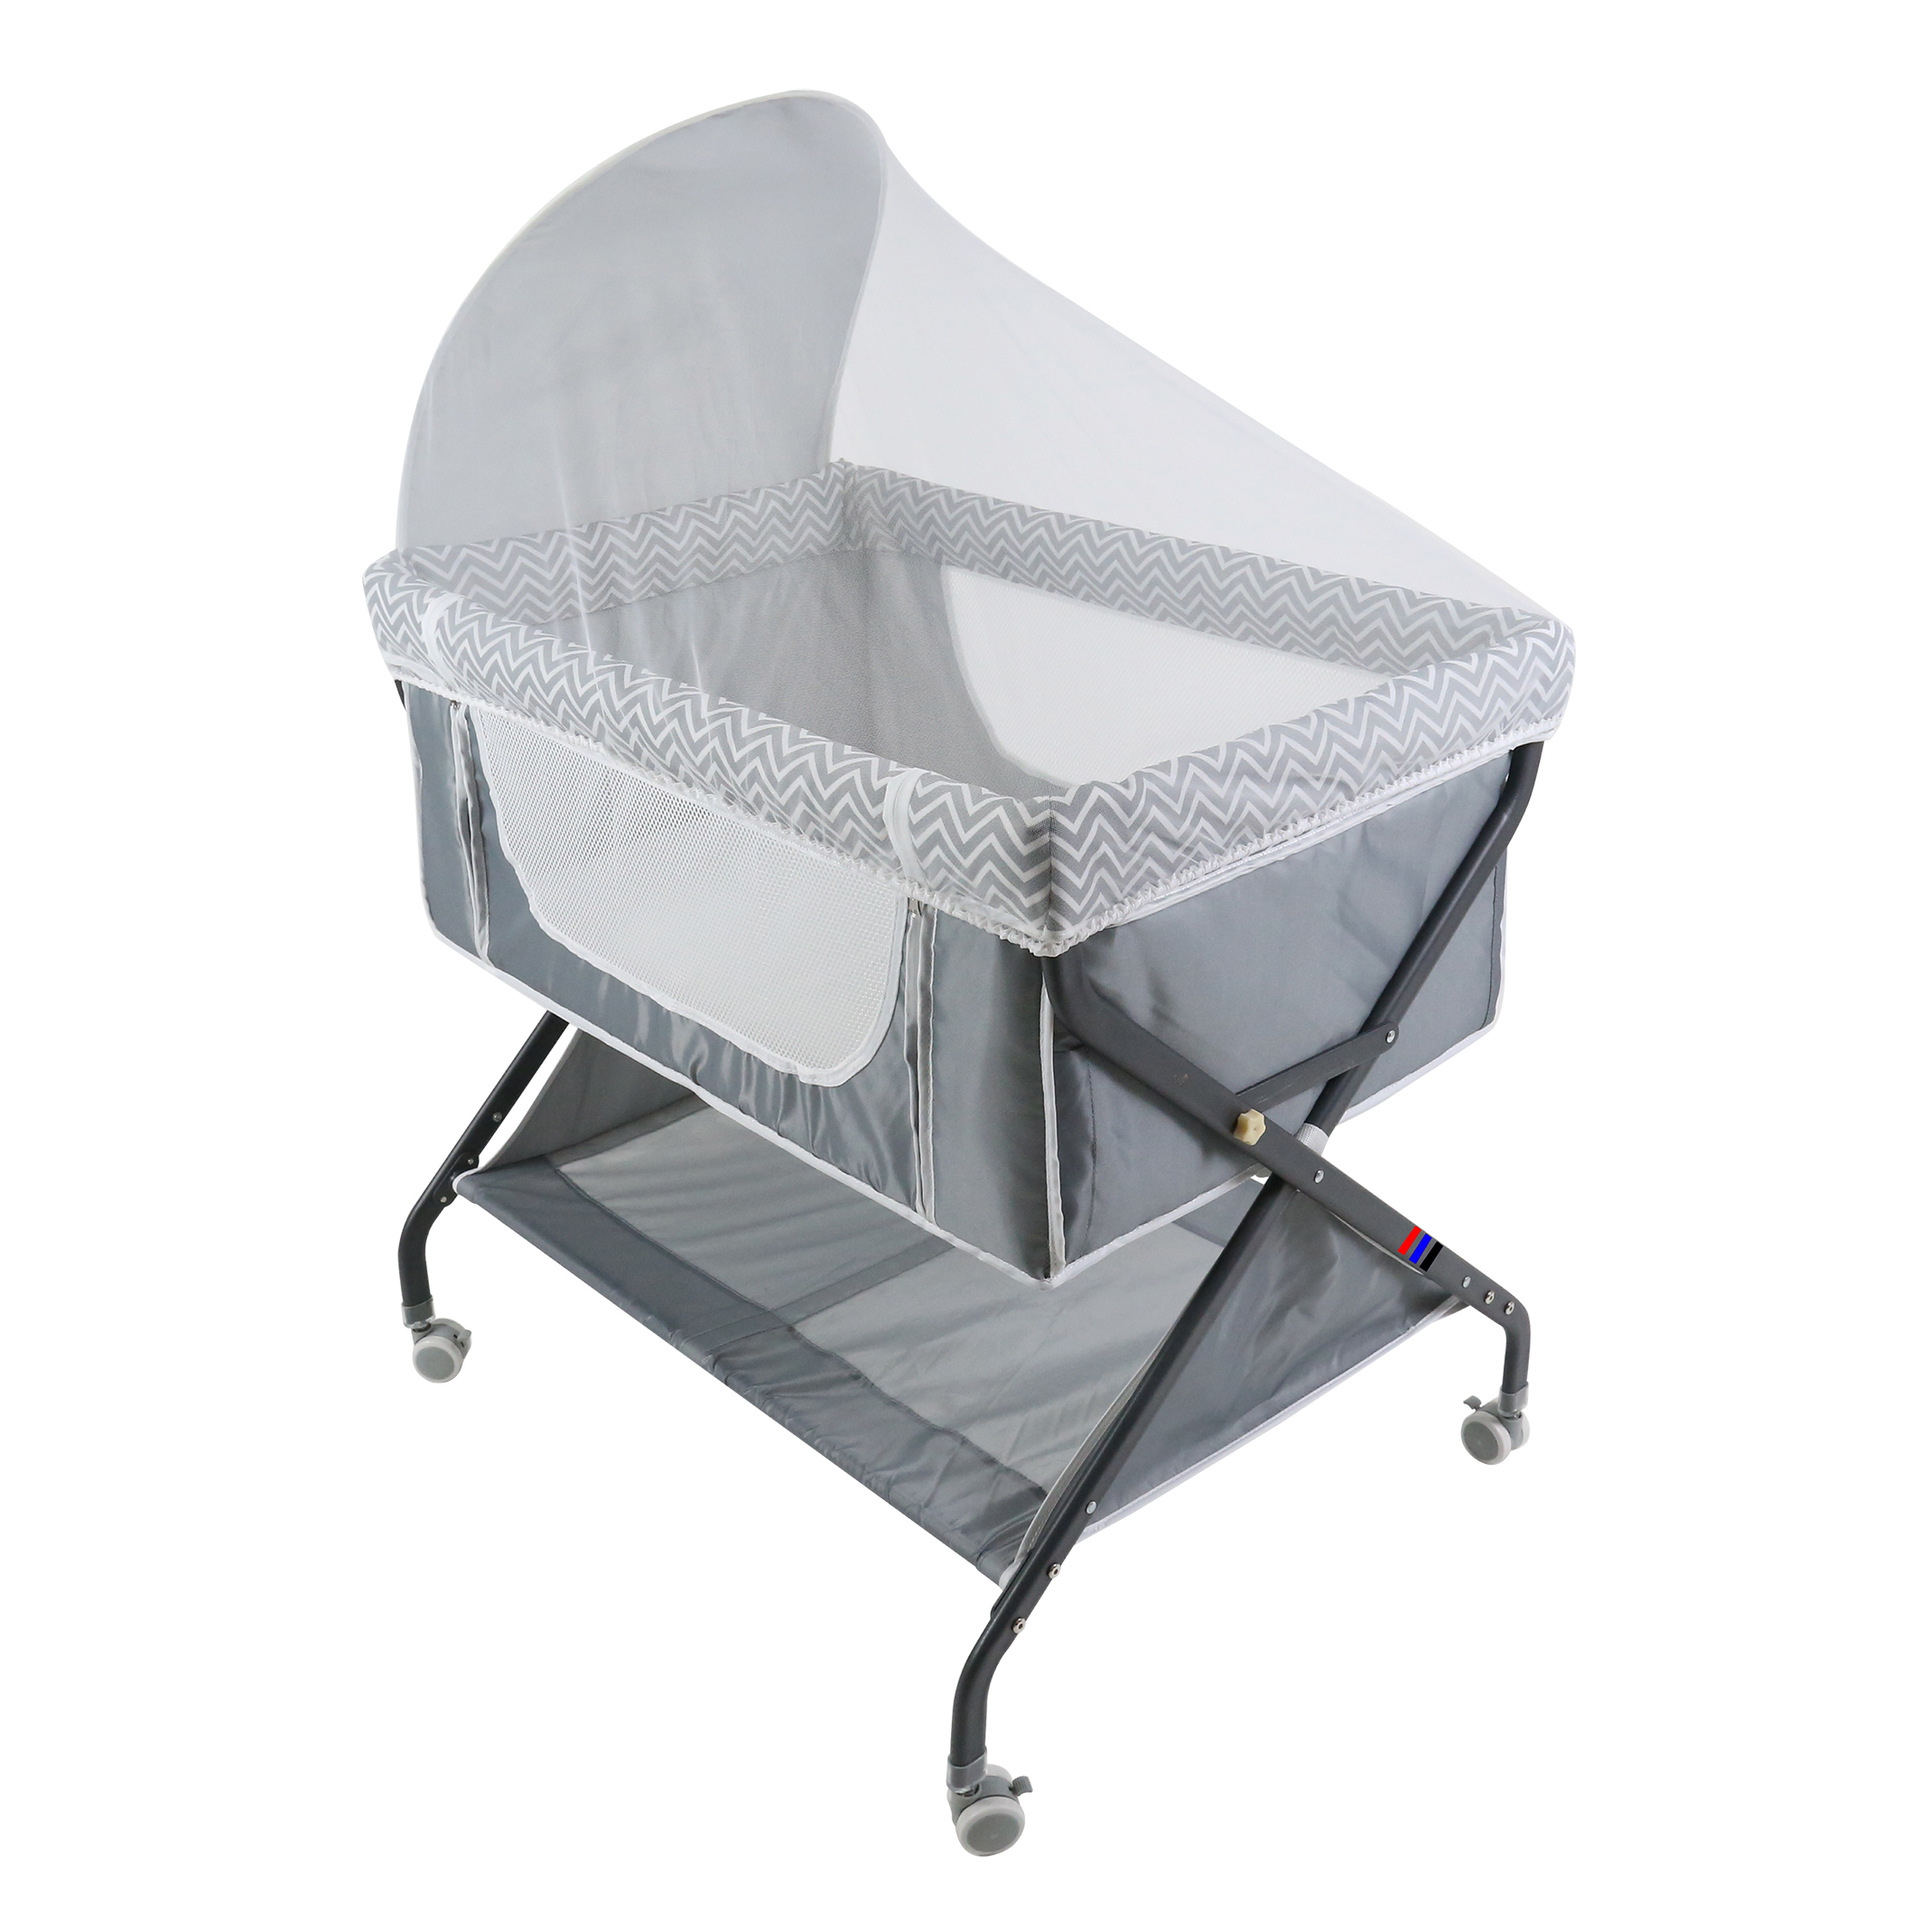 X-type Portable Multifunctional Foldable Bed Bed With Mosquito Net And Roller Splicing Bedside Bed For Newborn Travel